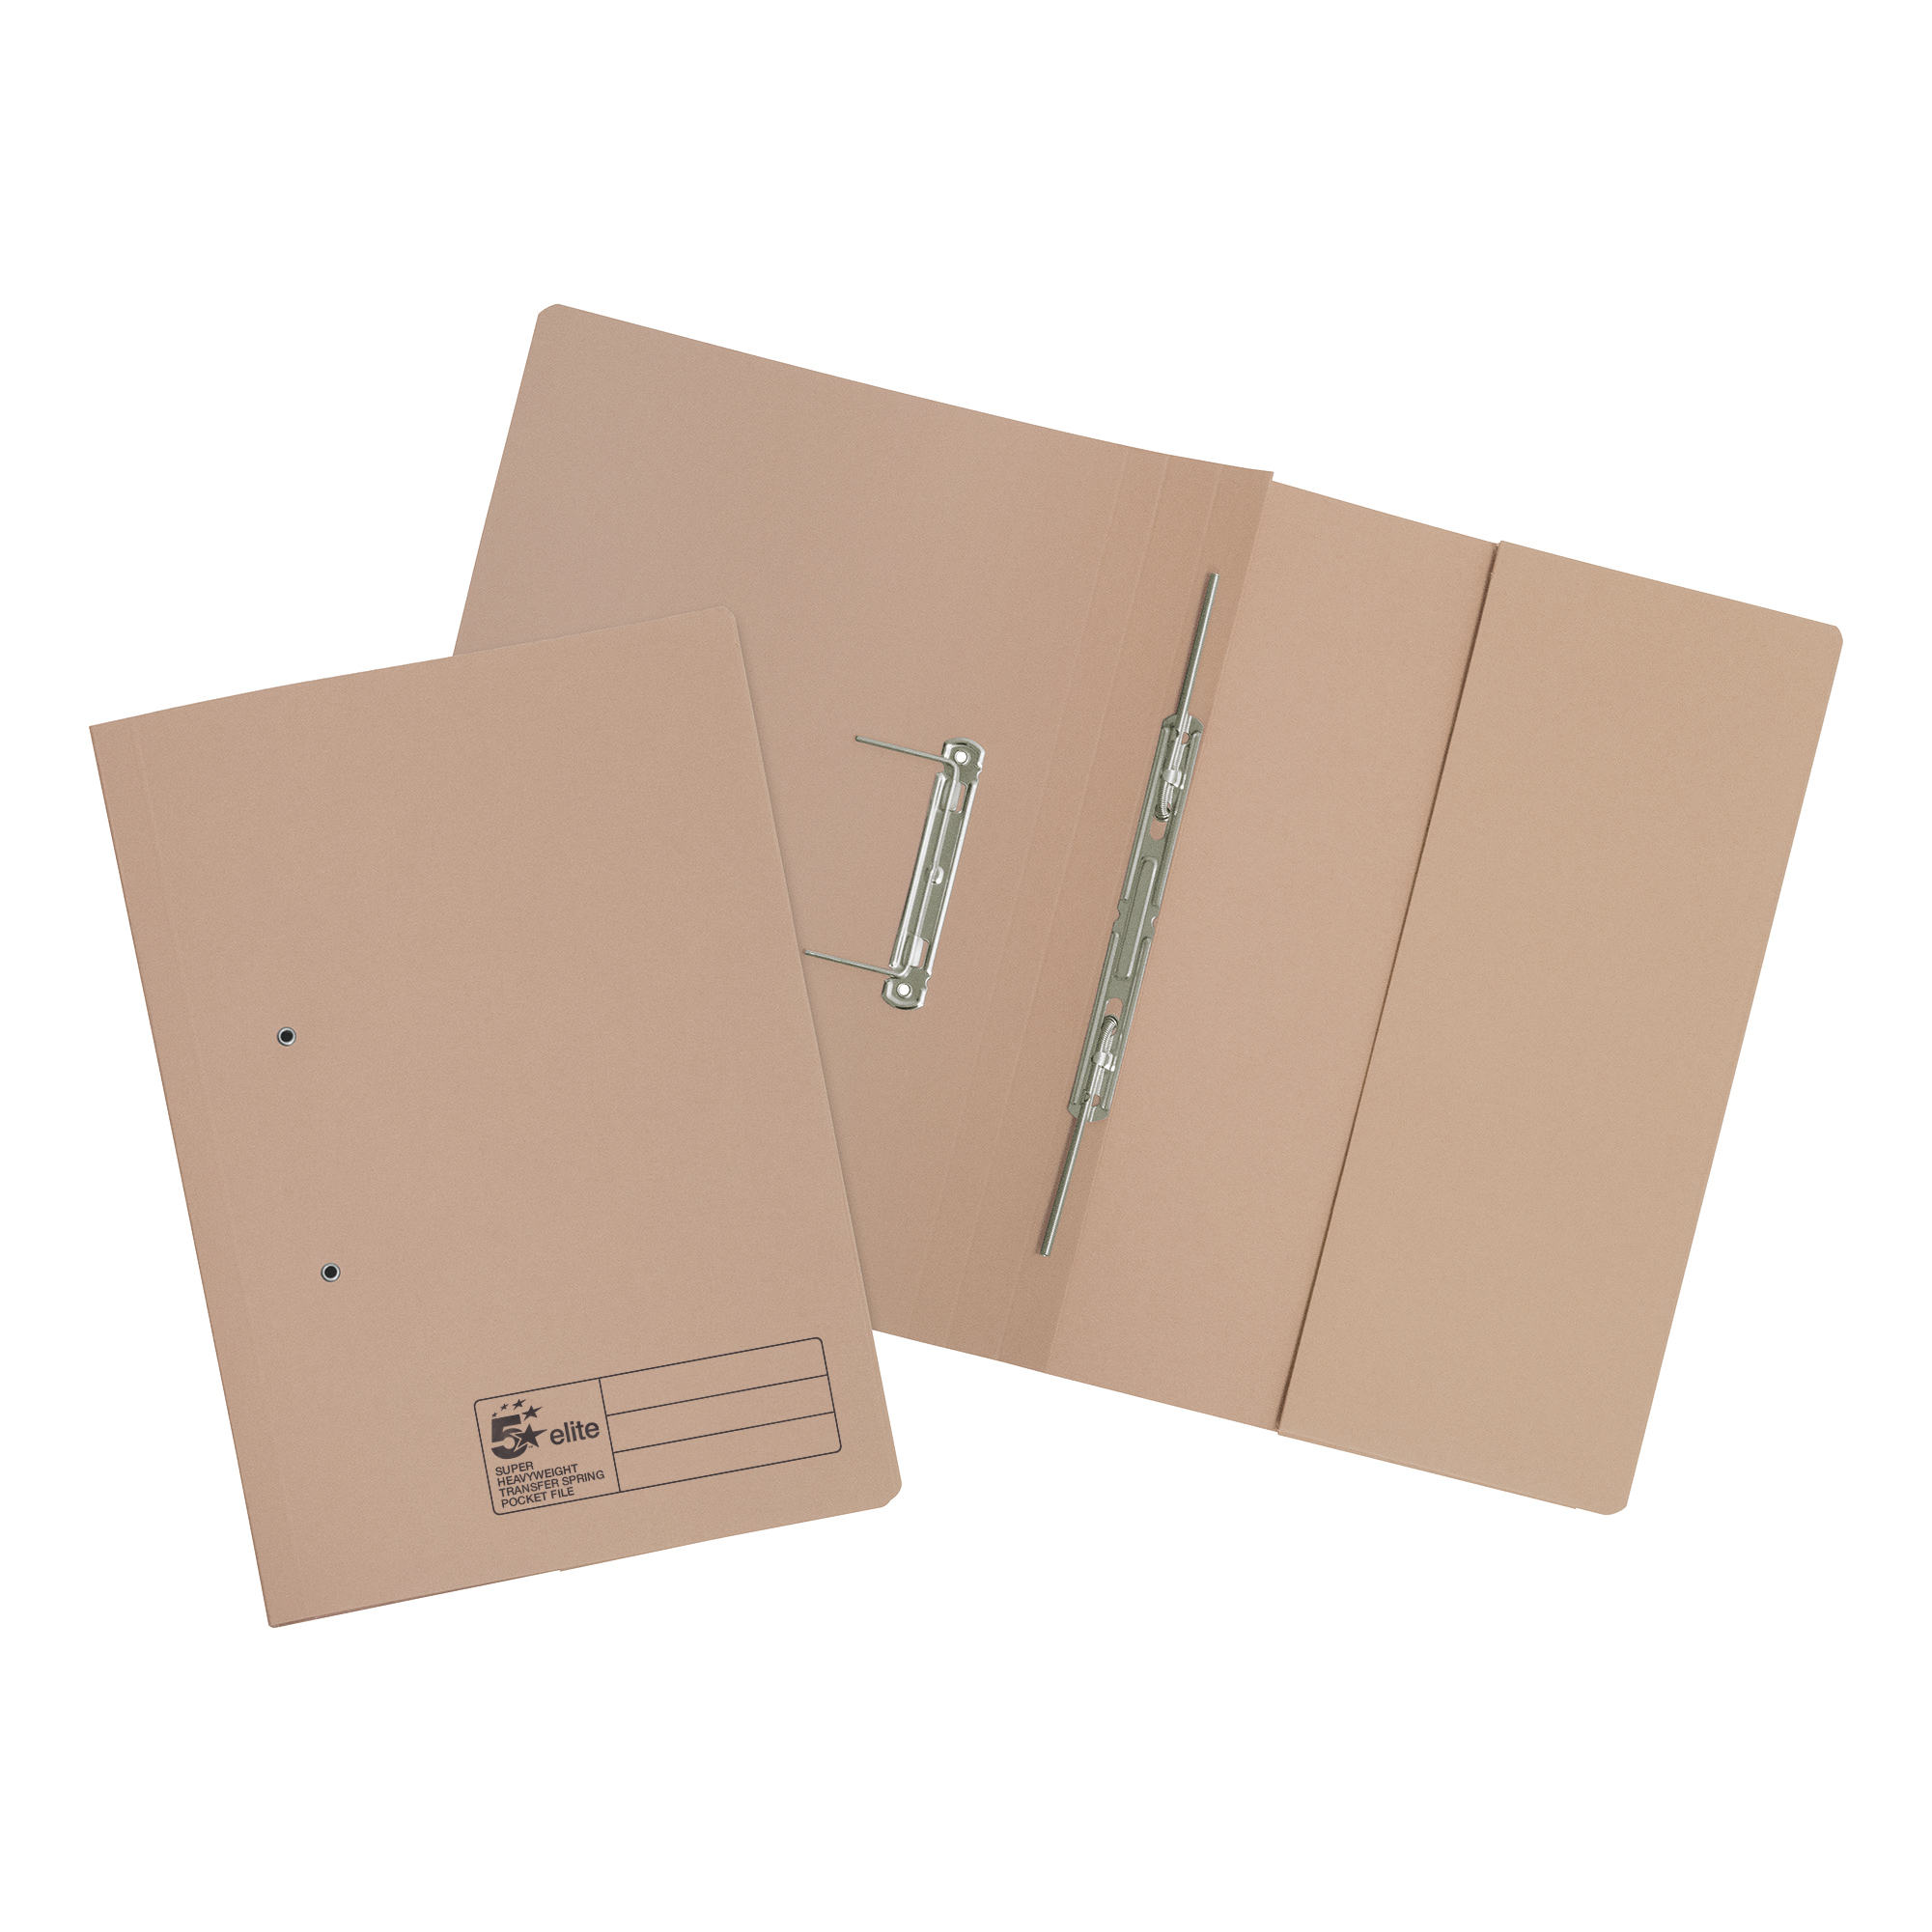 Spring Files 5 Star Elite Transfer Spring Pocket File Super Heavyweight 420gsm Foolscap Buff Pack 25